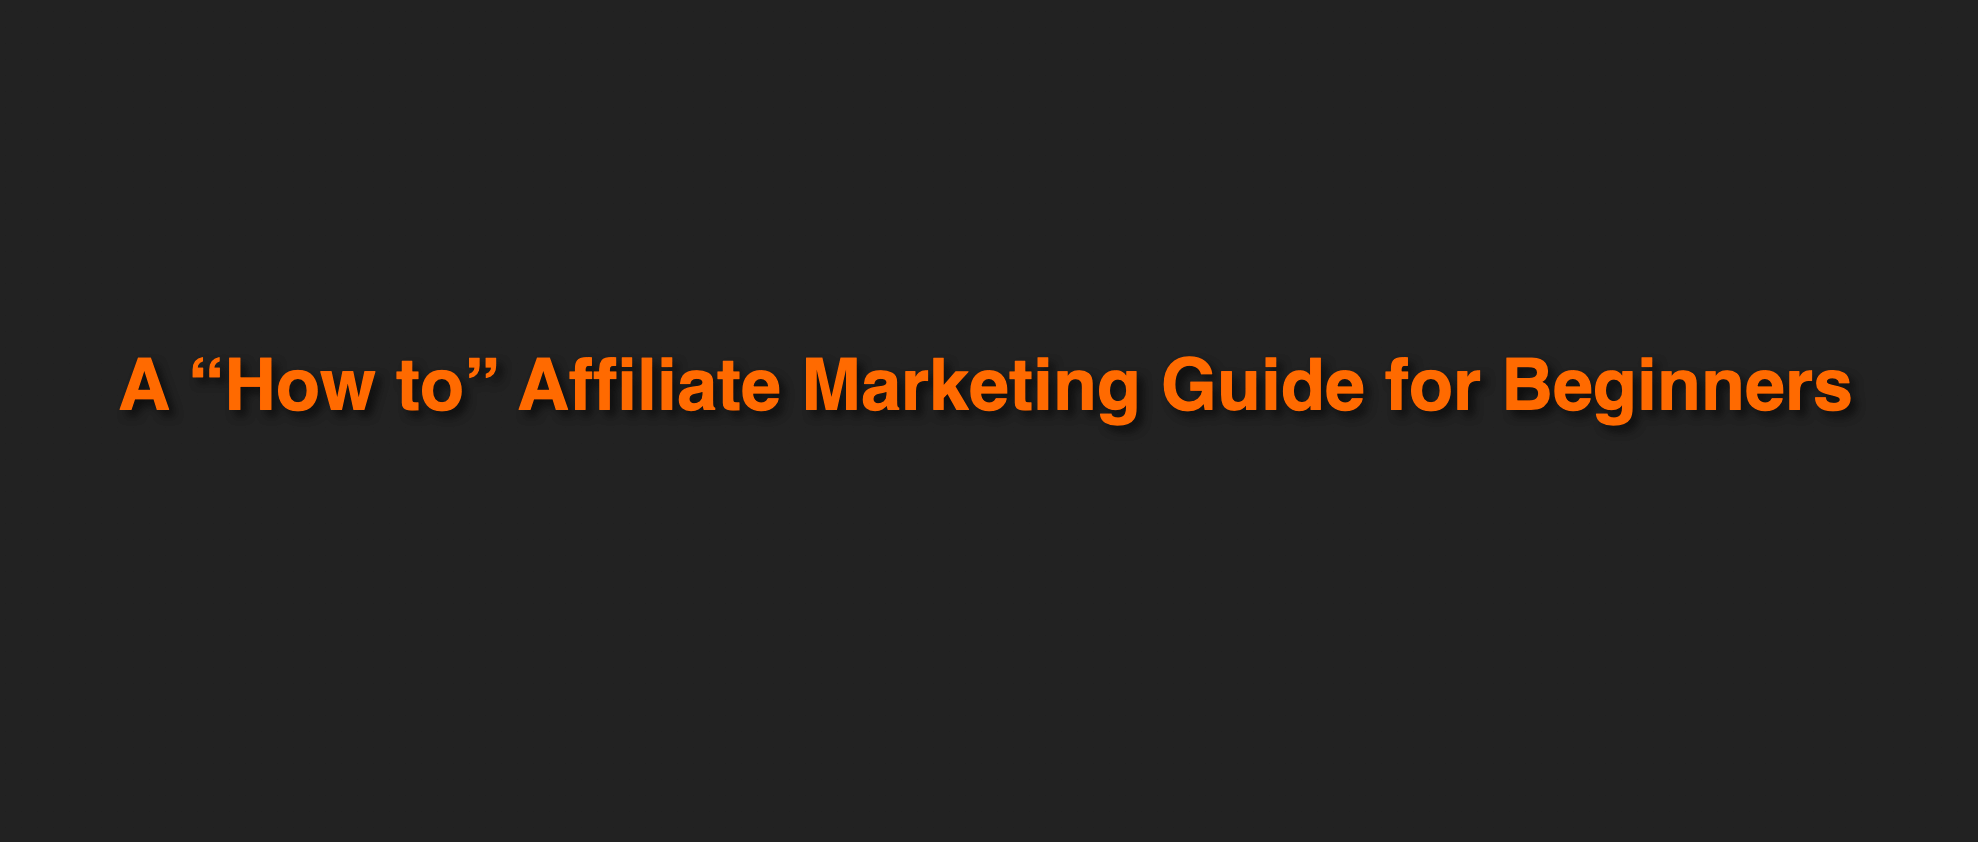 affiliate-marketing-guide-for-beginners-2018